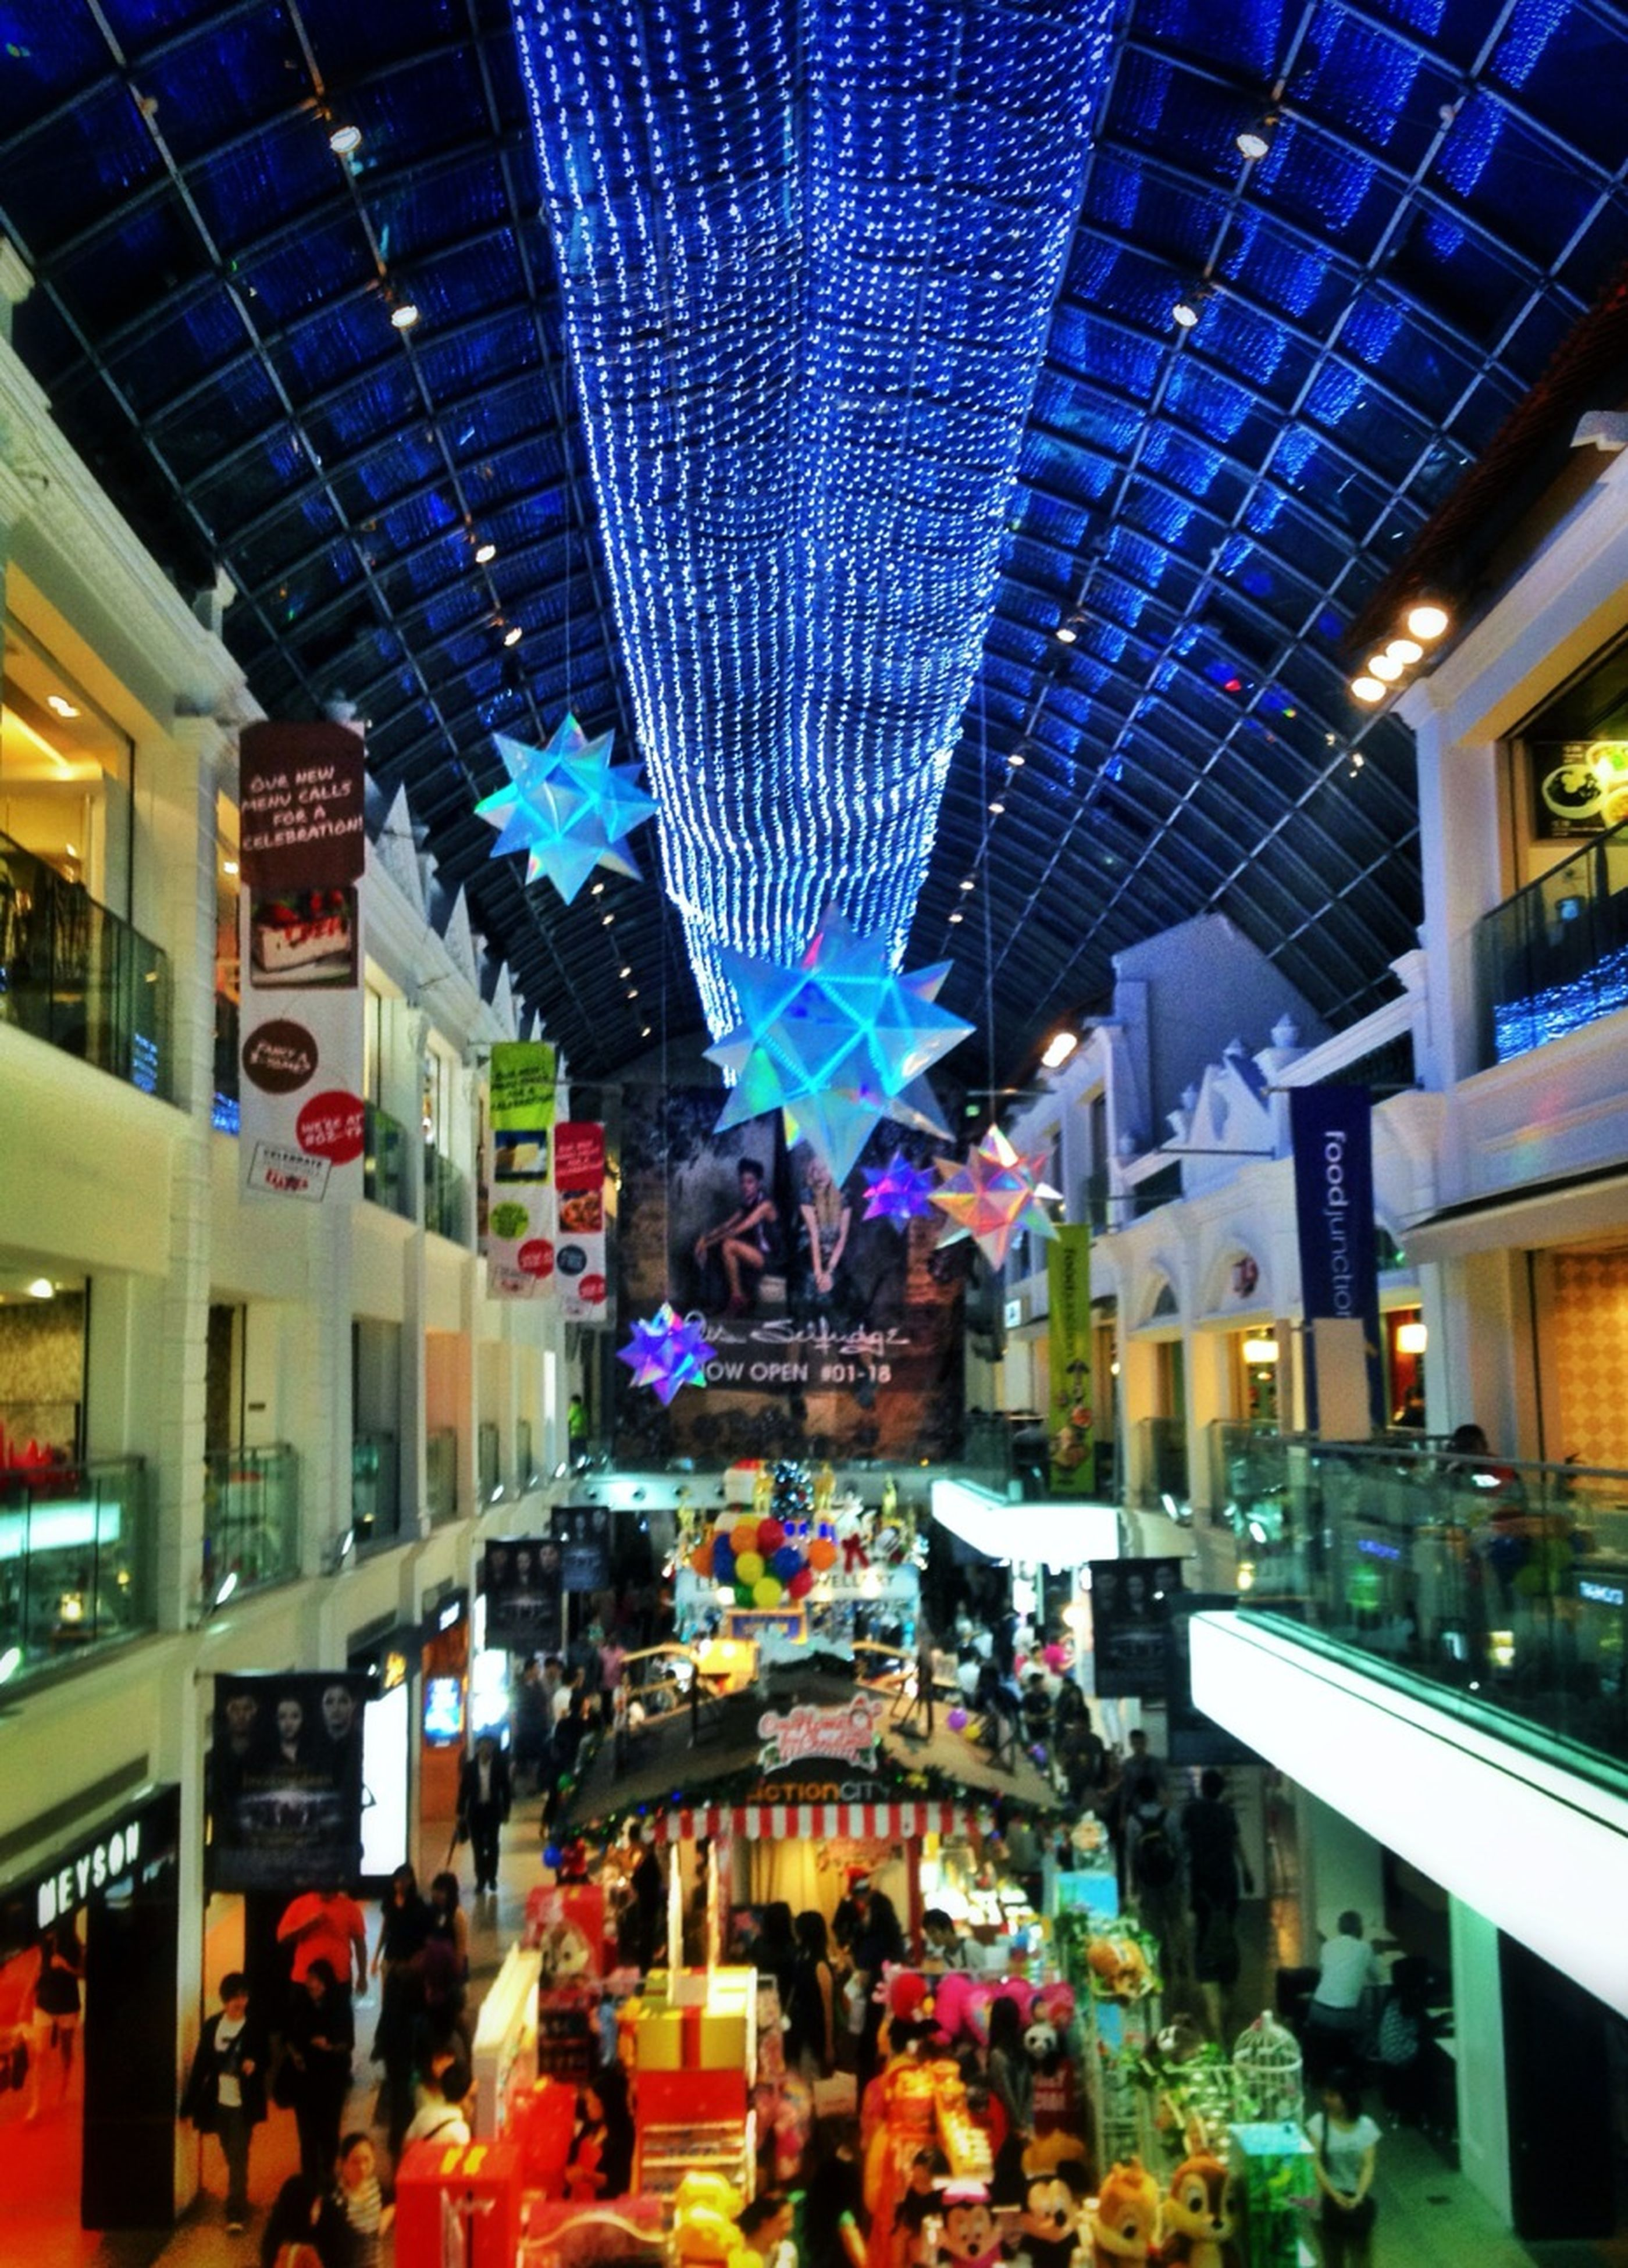 illuminated, architecture, built structure, building exterior, city, large group of people, city life, store, lighting equipment, night, men, person, incidental people, retail, shopping mall, crowd, market, shopping, indoors